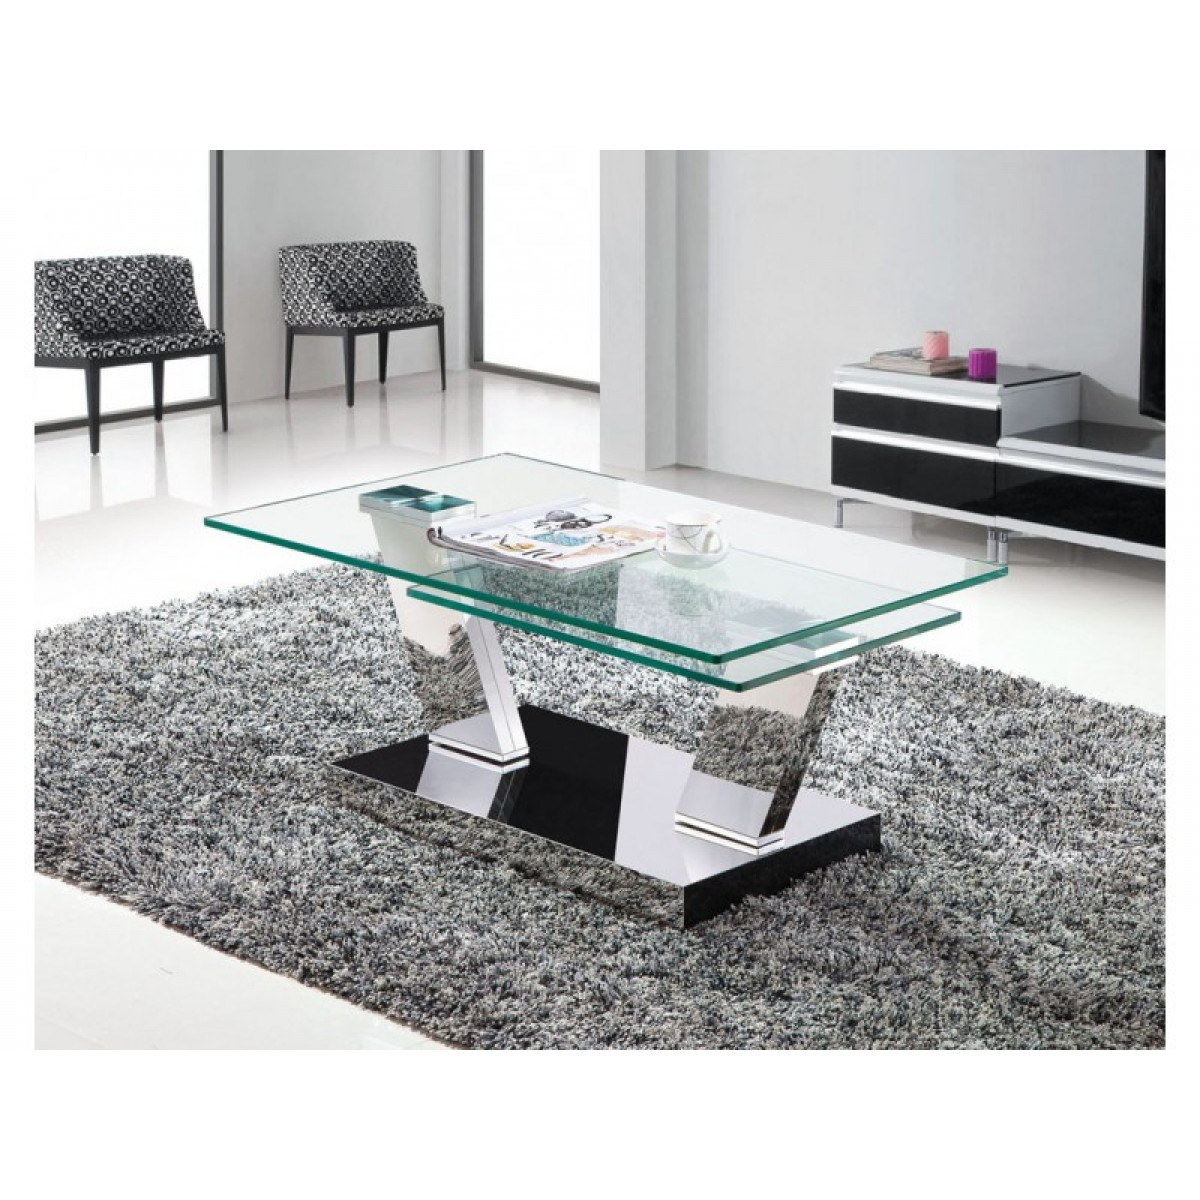 table basse double plateaux transparents carr s chrom s. Black Bedroom Furniture Sets. Home Design Ideas